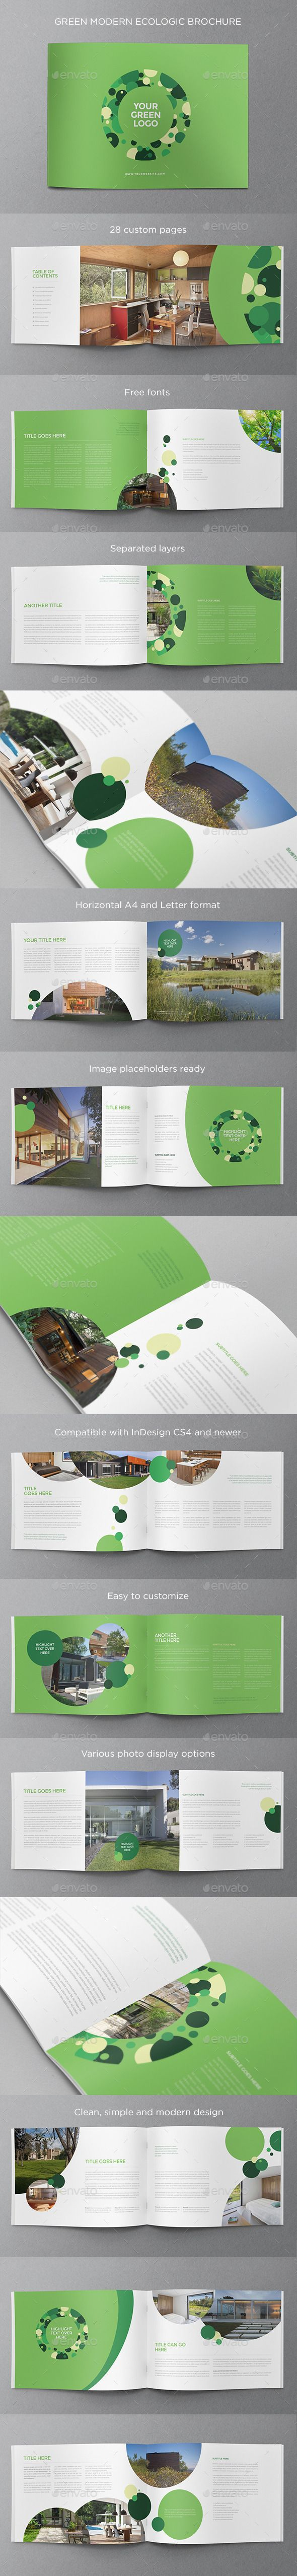 Green Modern Ecologic Brochure Template #design #print Download: http://graphicriver.net/item/green-modern-ecologic-brochure/11932612?ref=ksioks